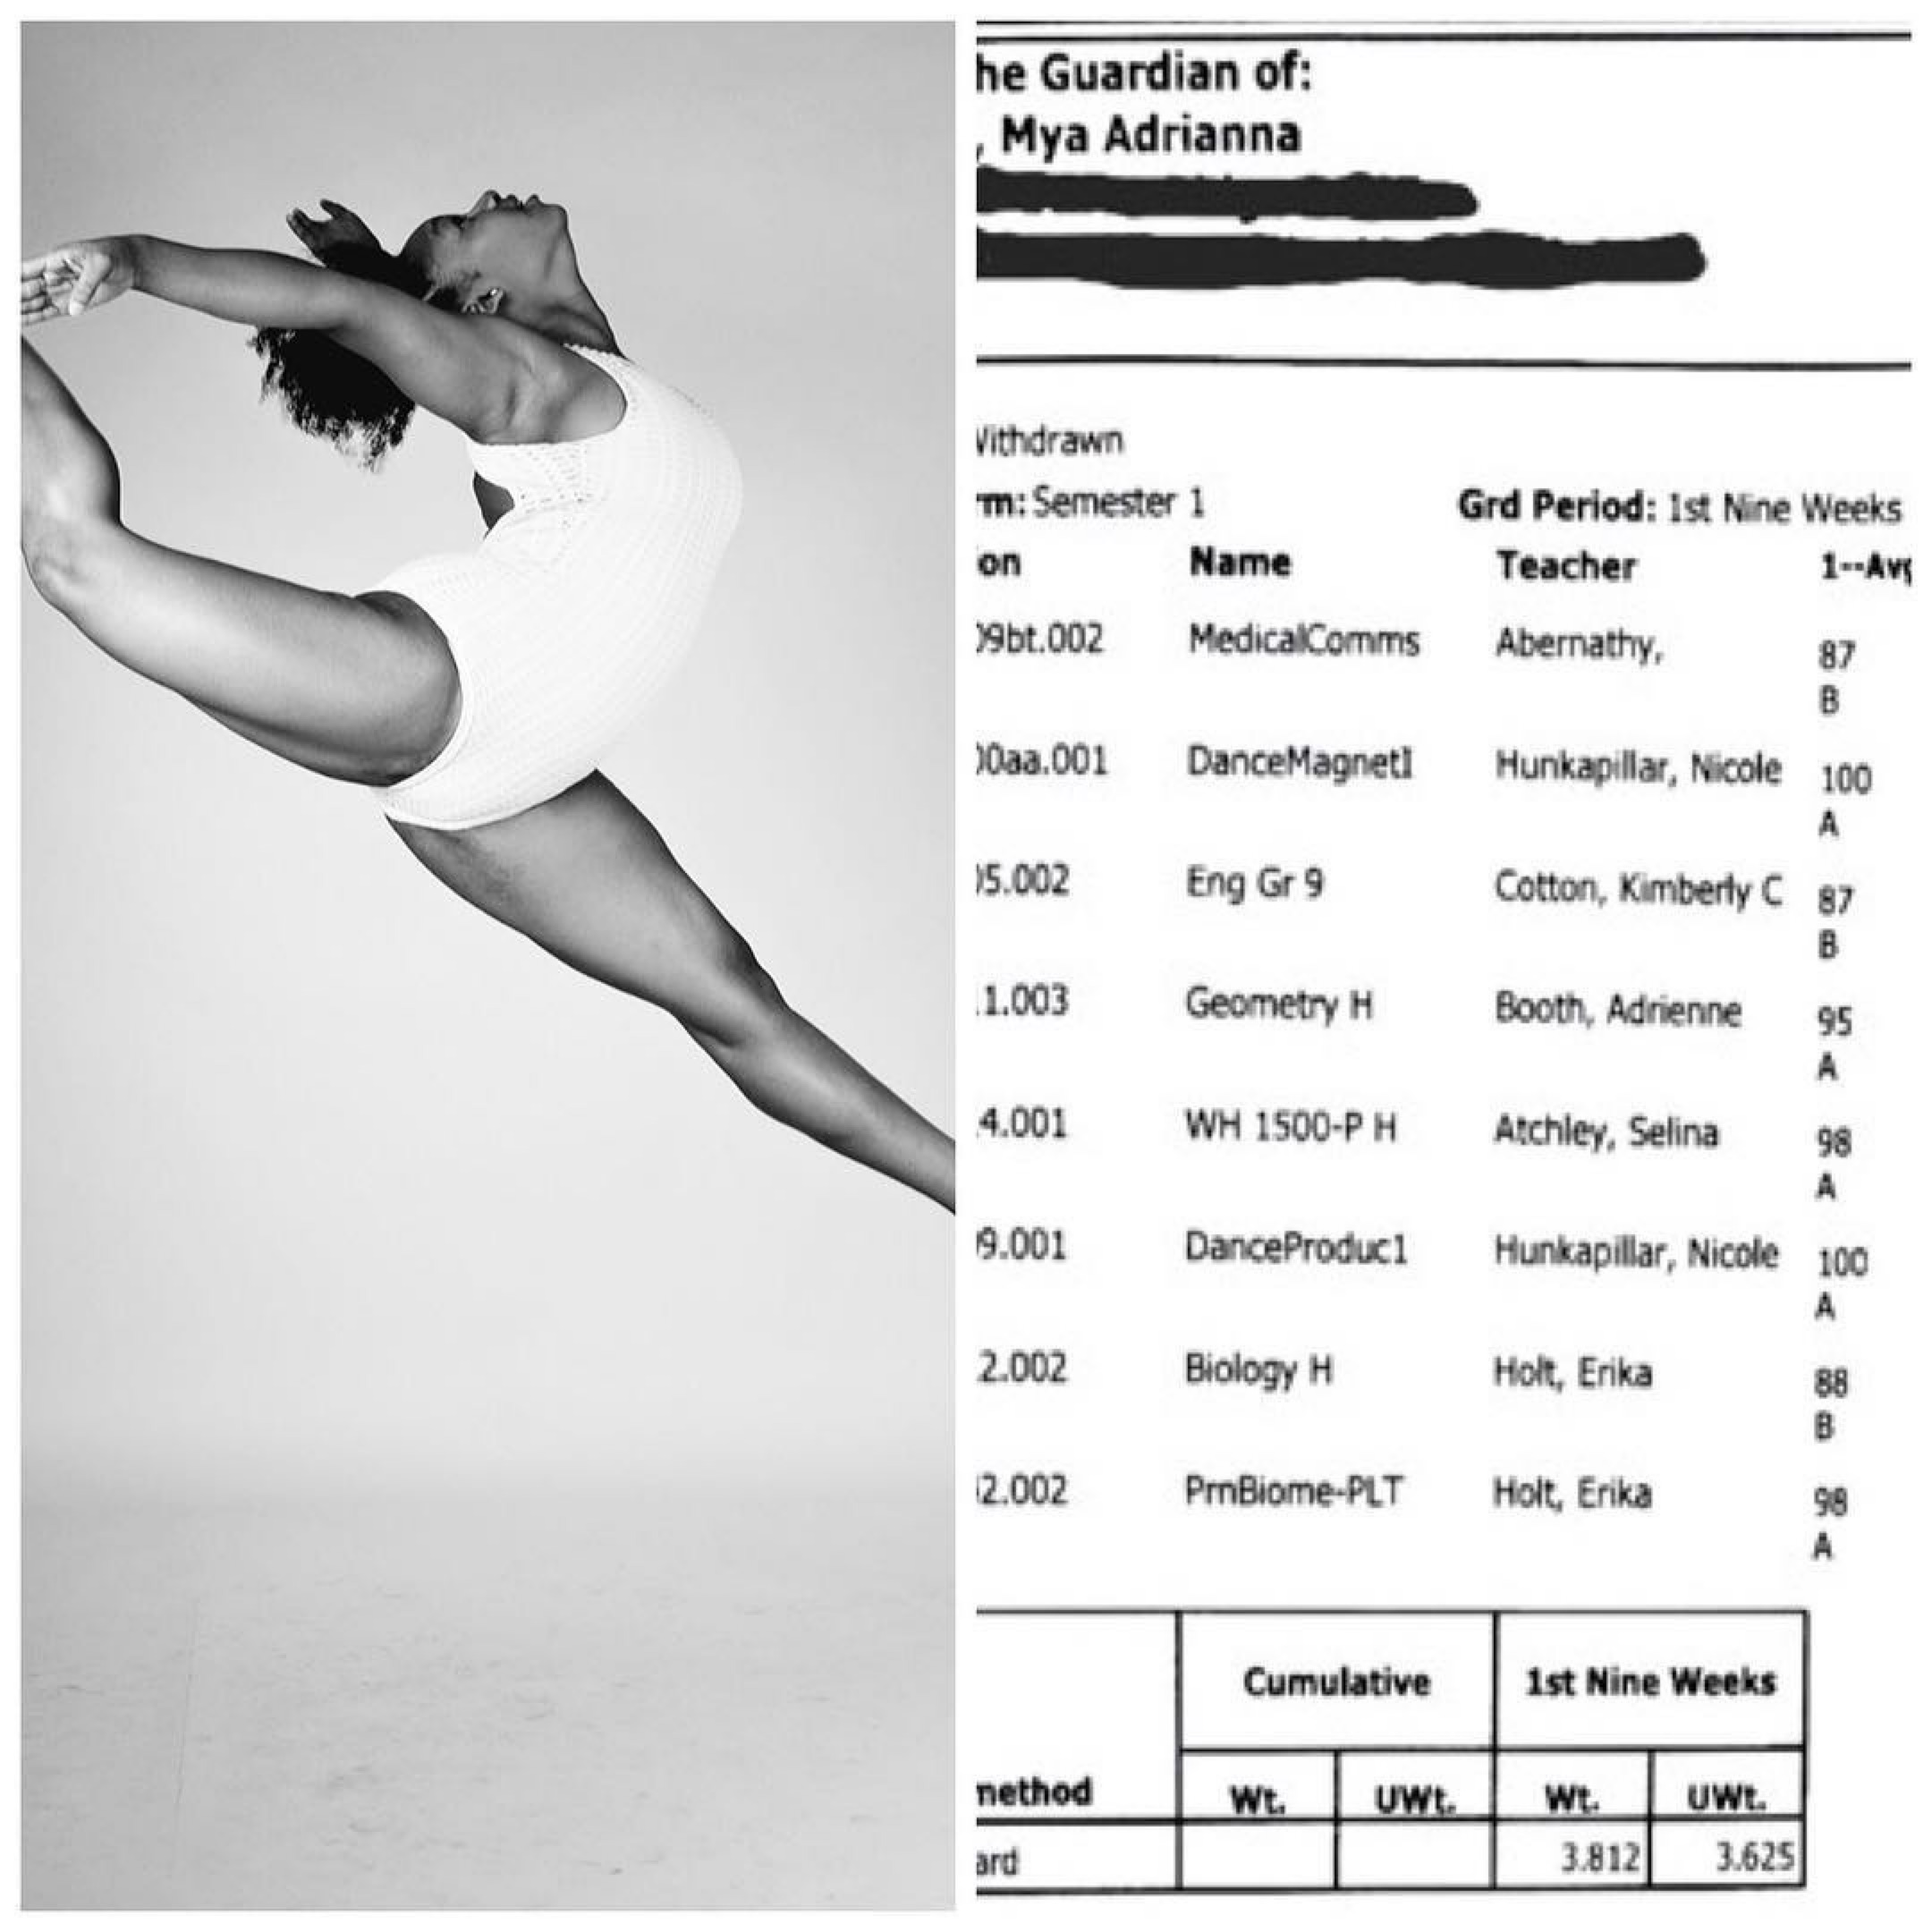 Gifted & Talented 1st Edition: A Collection of Dancers Receiving Academic Honors